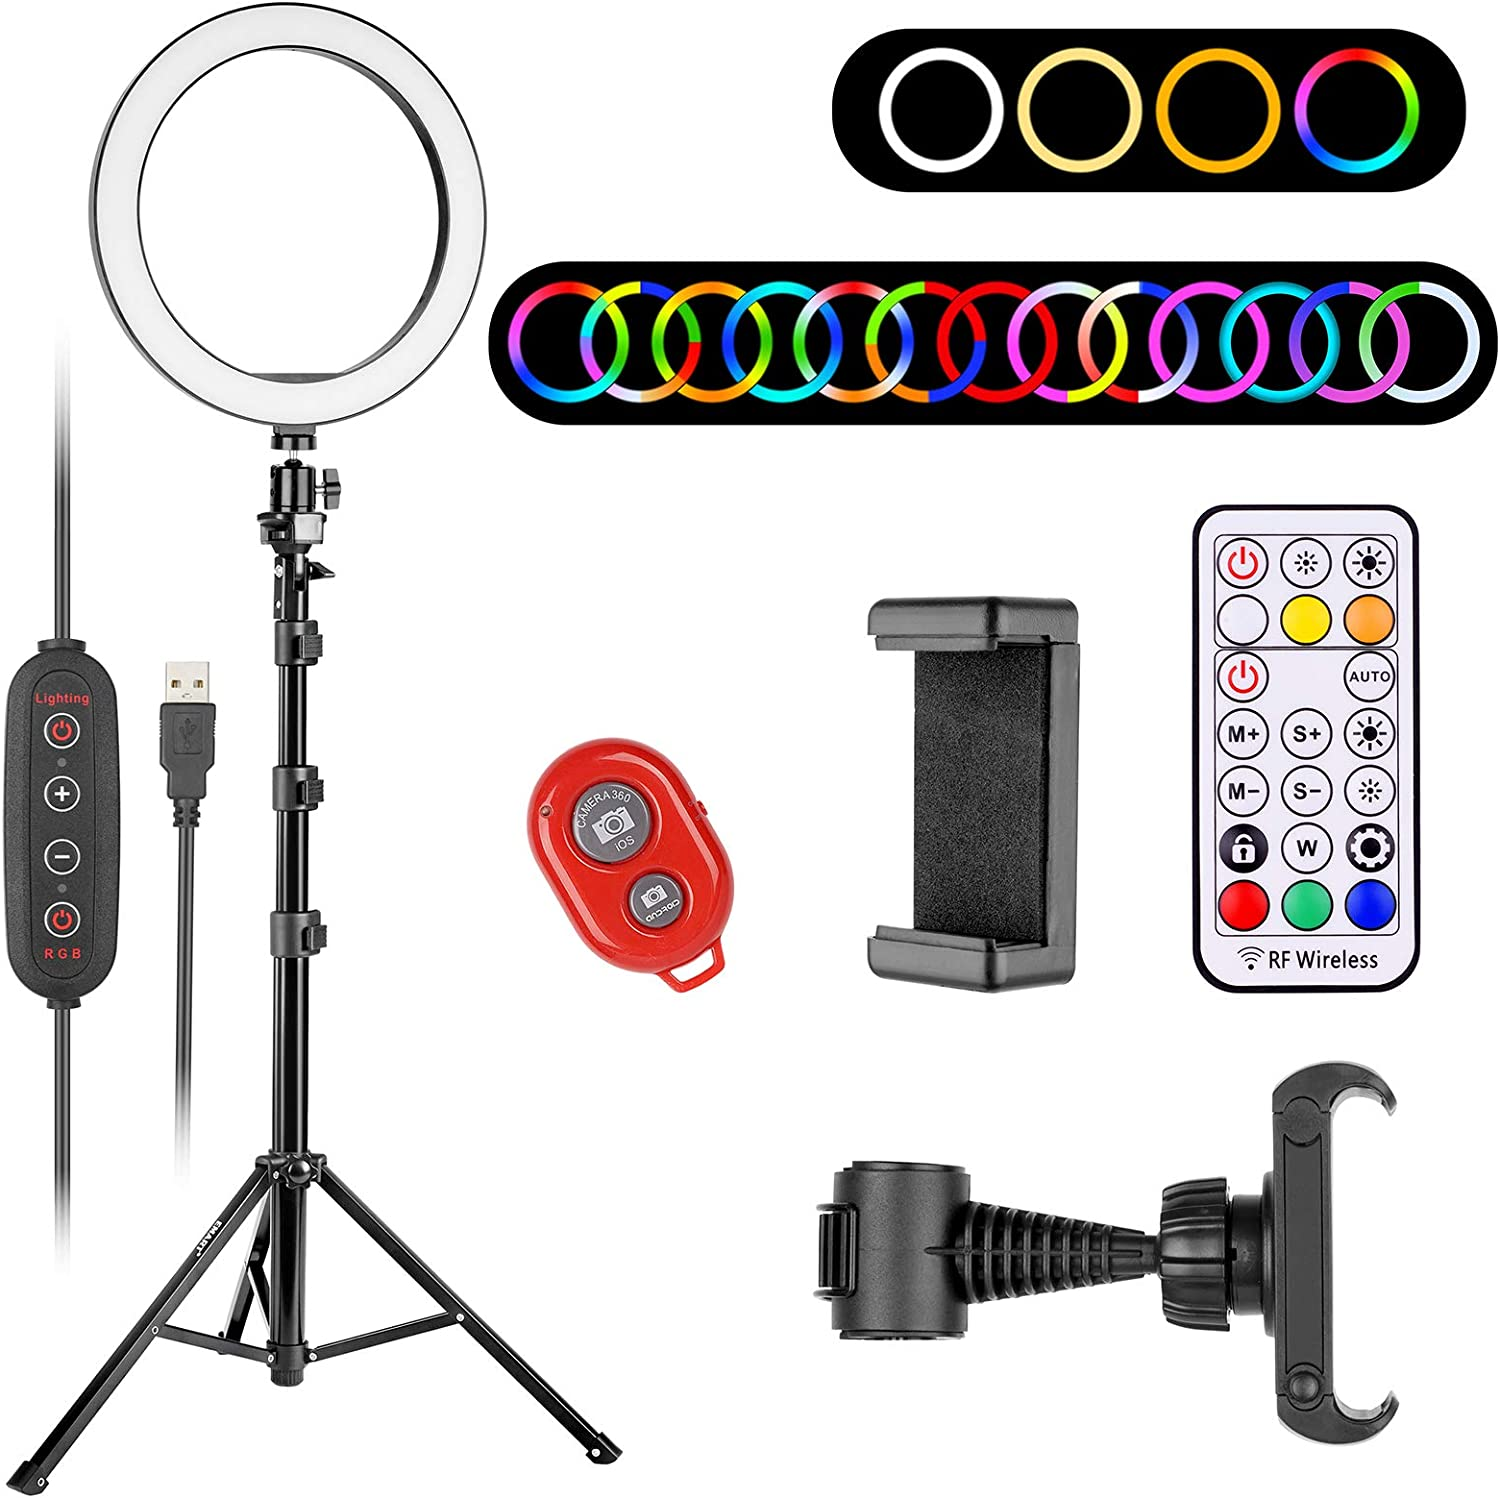 EMART 10 inch RGB Ring Light - Adjustable Tripod Stand & Cell Phone Holder for iPhone/Android - LED Selfie Circle Ringlight for Camera Video Recording/Photography/TIK Tok/Filming/Live Streaming